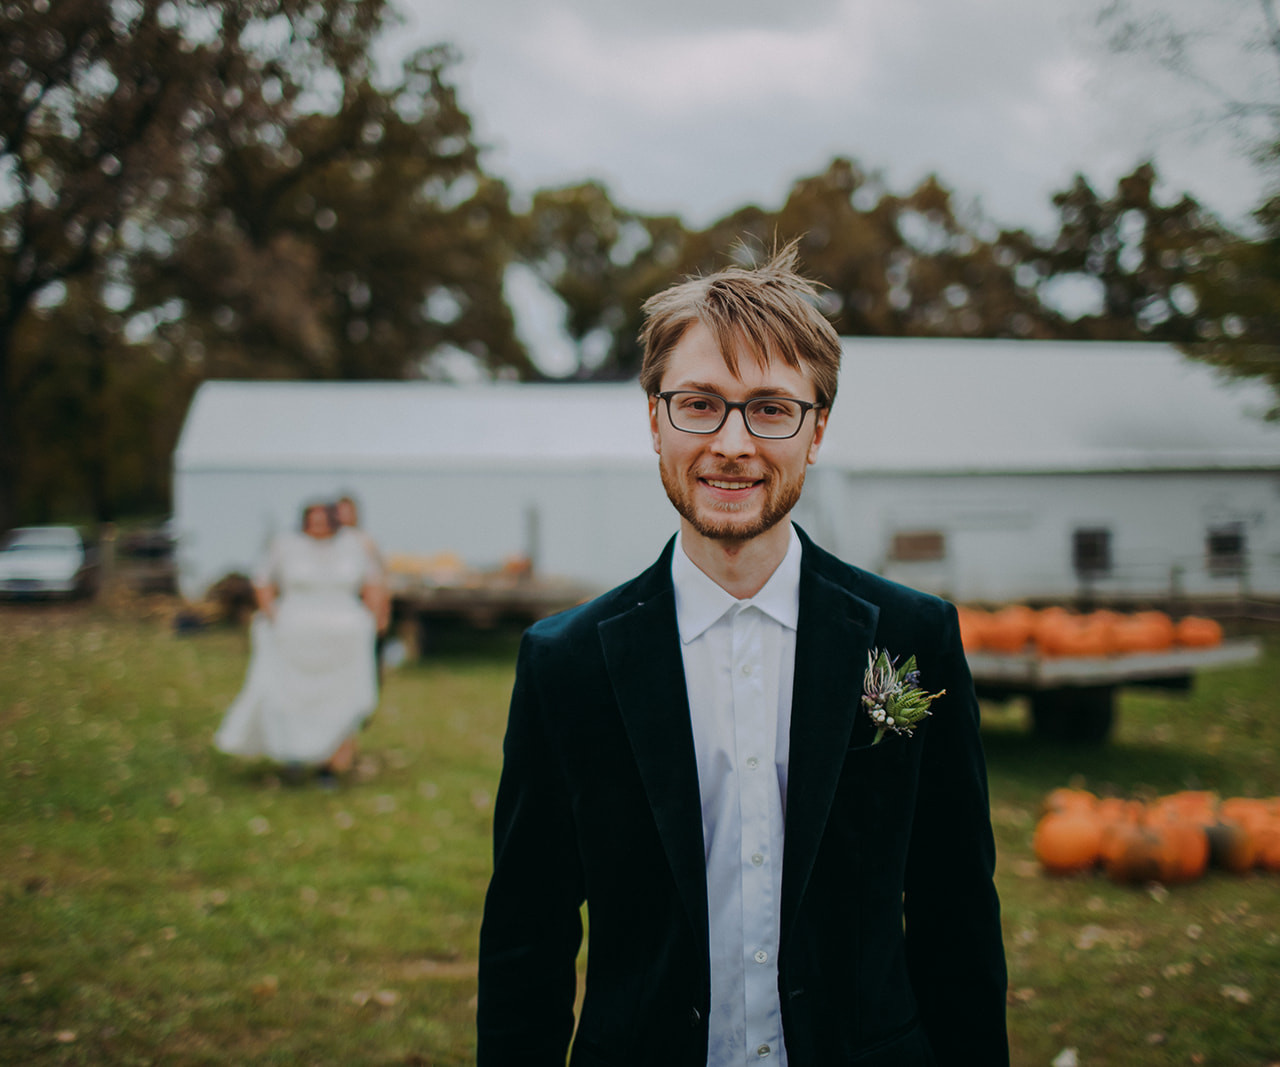 A groom smiles at the camera as he waits for his bride to approach - Wisconsin wedding photographer